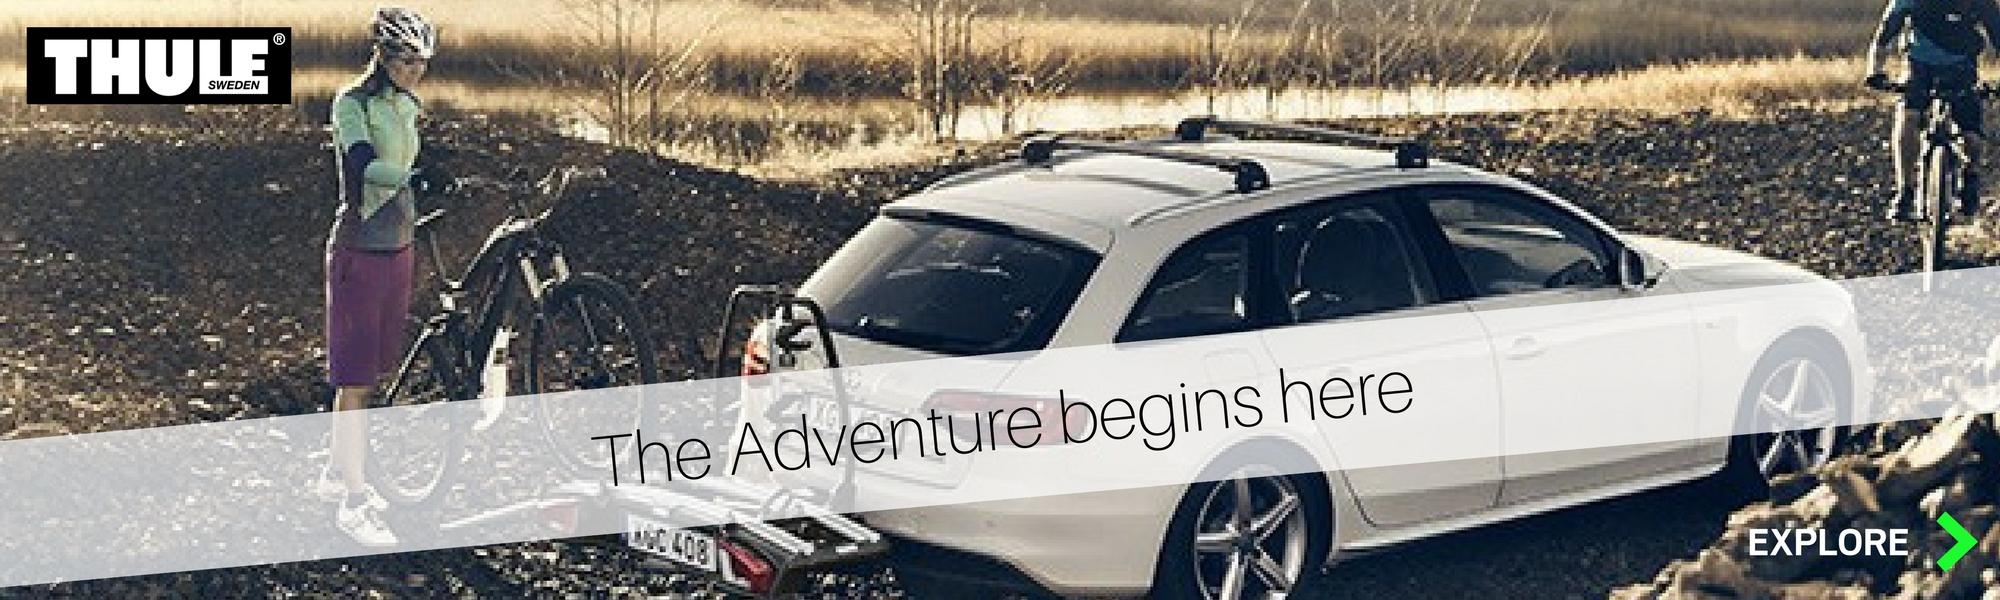 buy thule accessories online